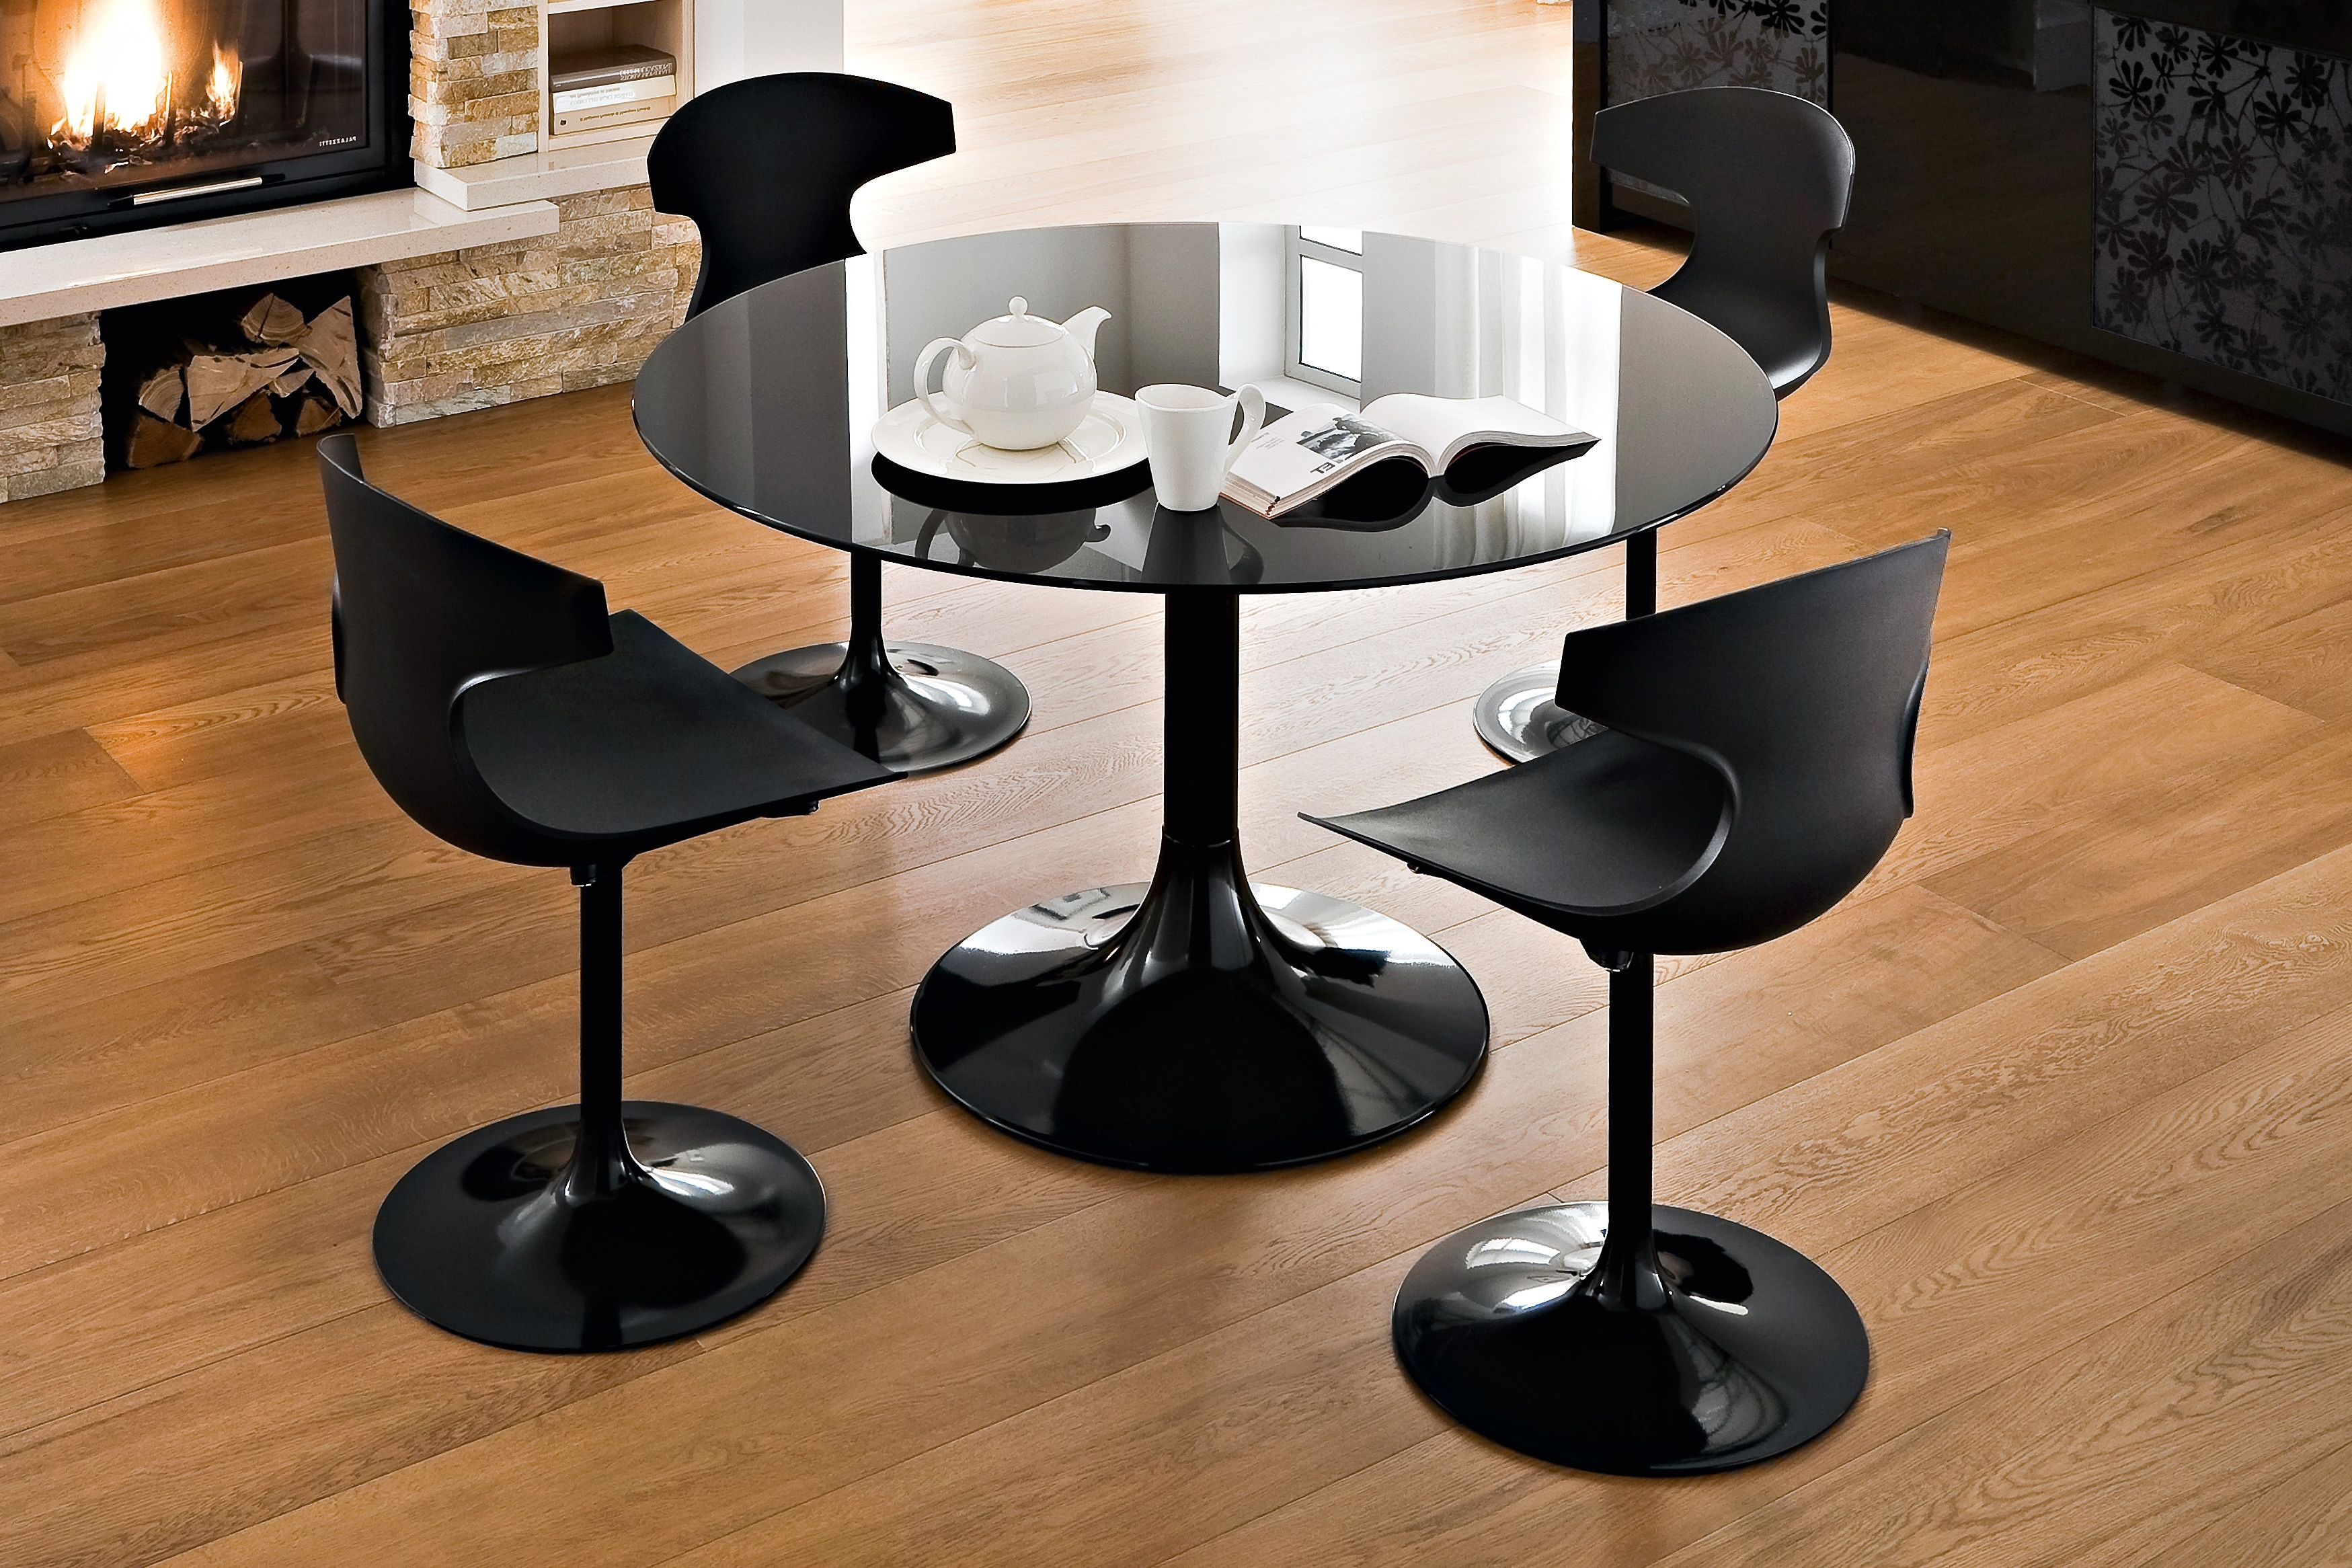 Round Black Glass Dining Tables And Chairs Within Most Current Round Black Glass Dining Table With Round Base Addedfour Black (View 7 of 25)